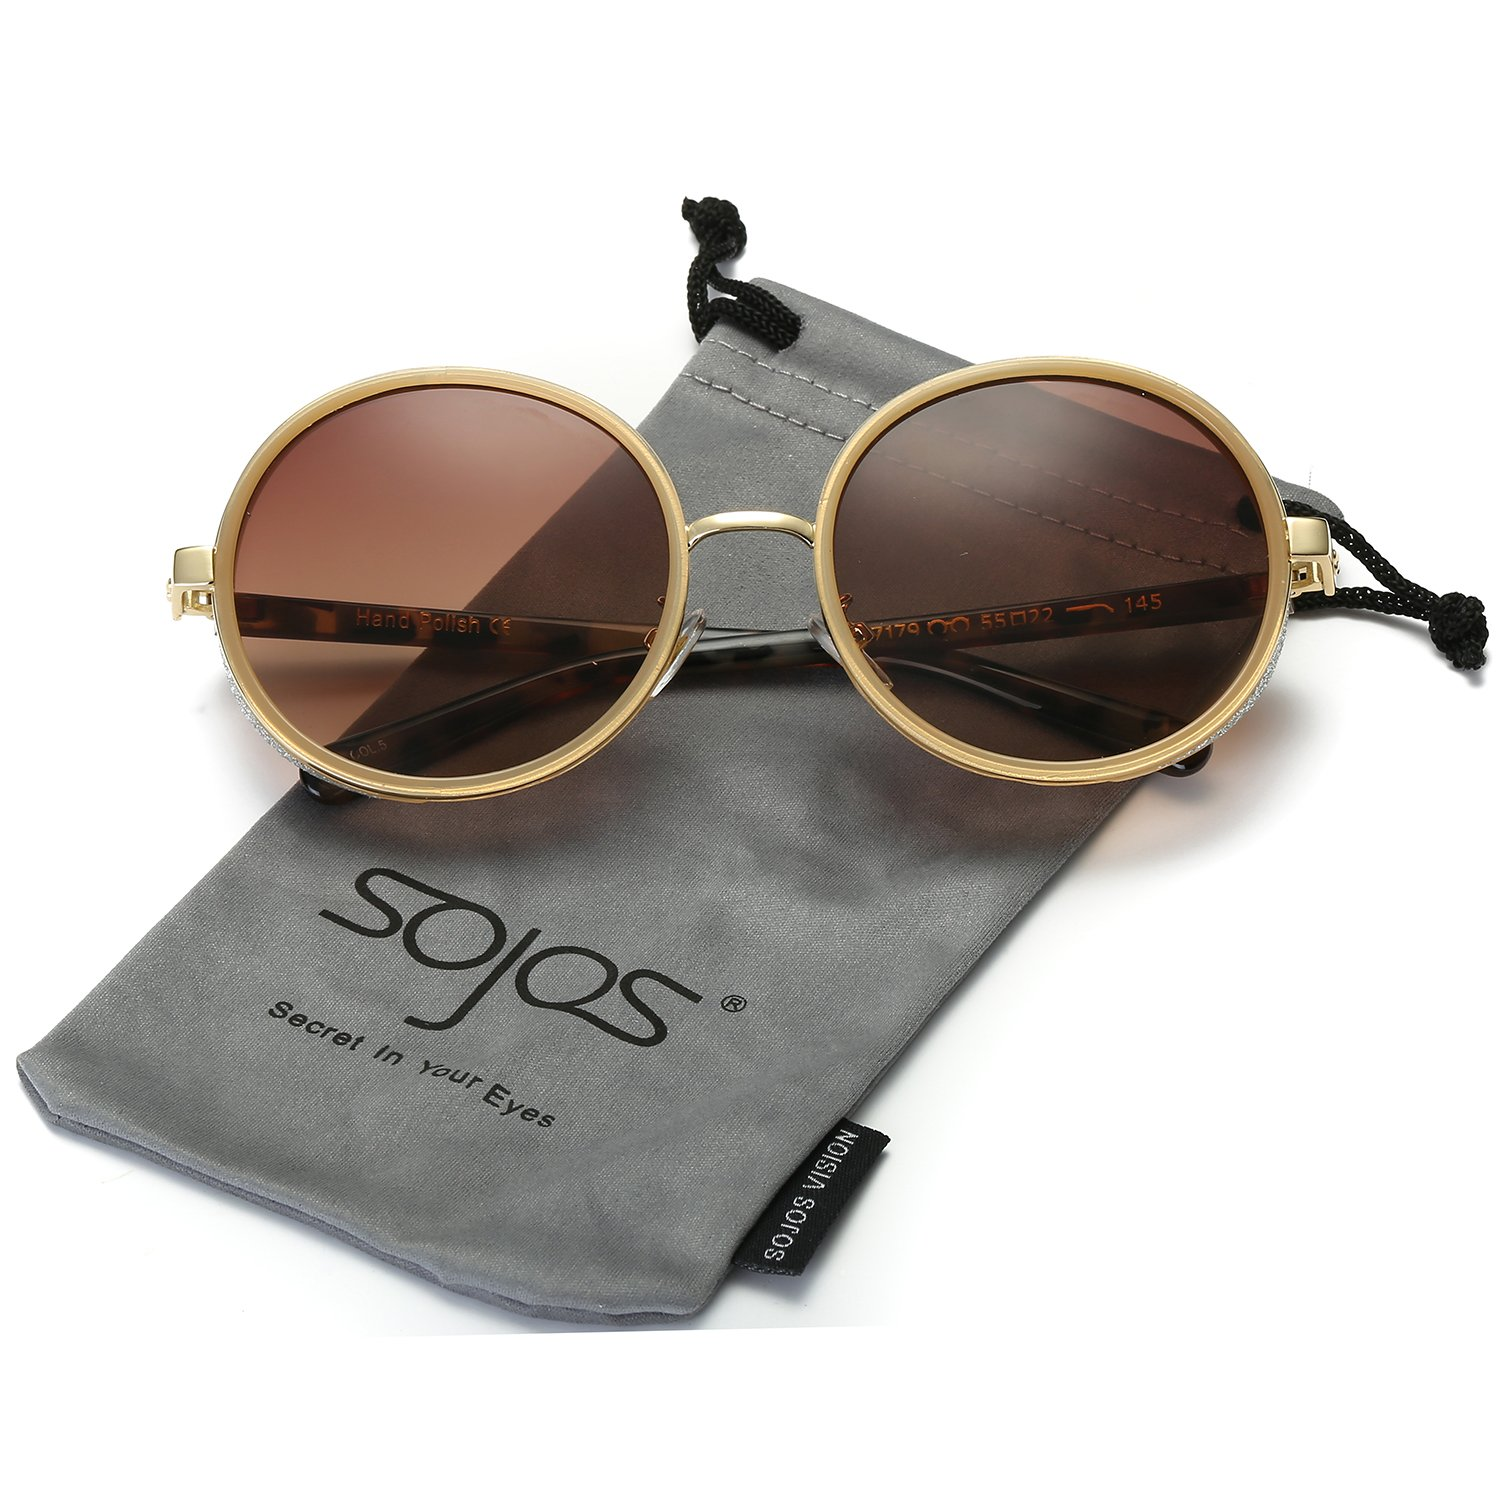 SojoS Retro Gothic Steampunk Round Mirrored Blingbling Classsic Women Sunglasses SJ2022 (C05 Brown Frame/Brown Lens, 56) by SOJOS